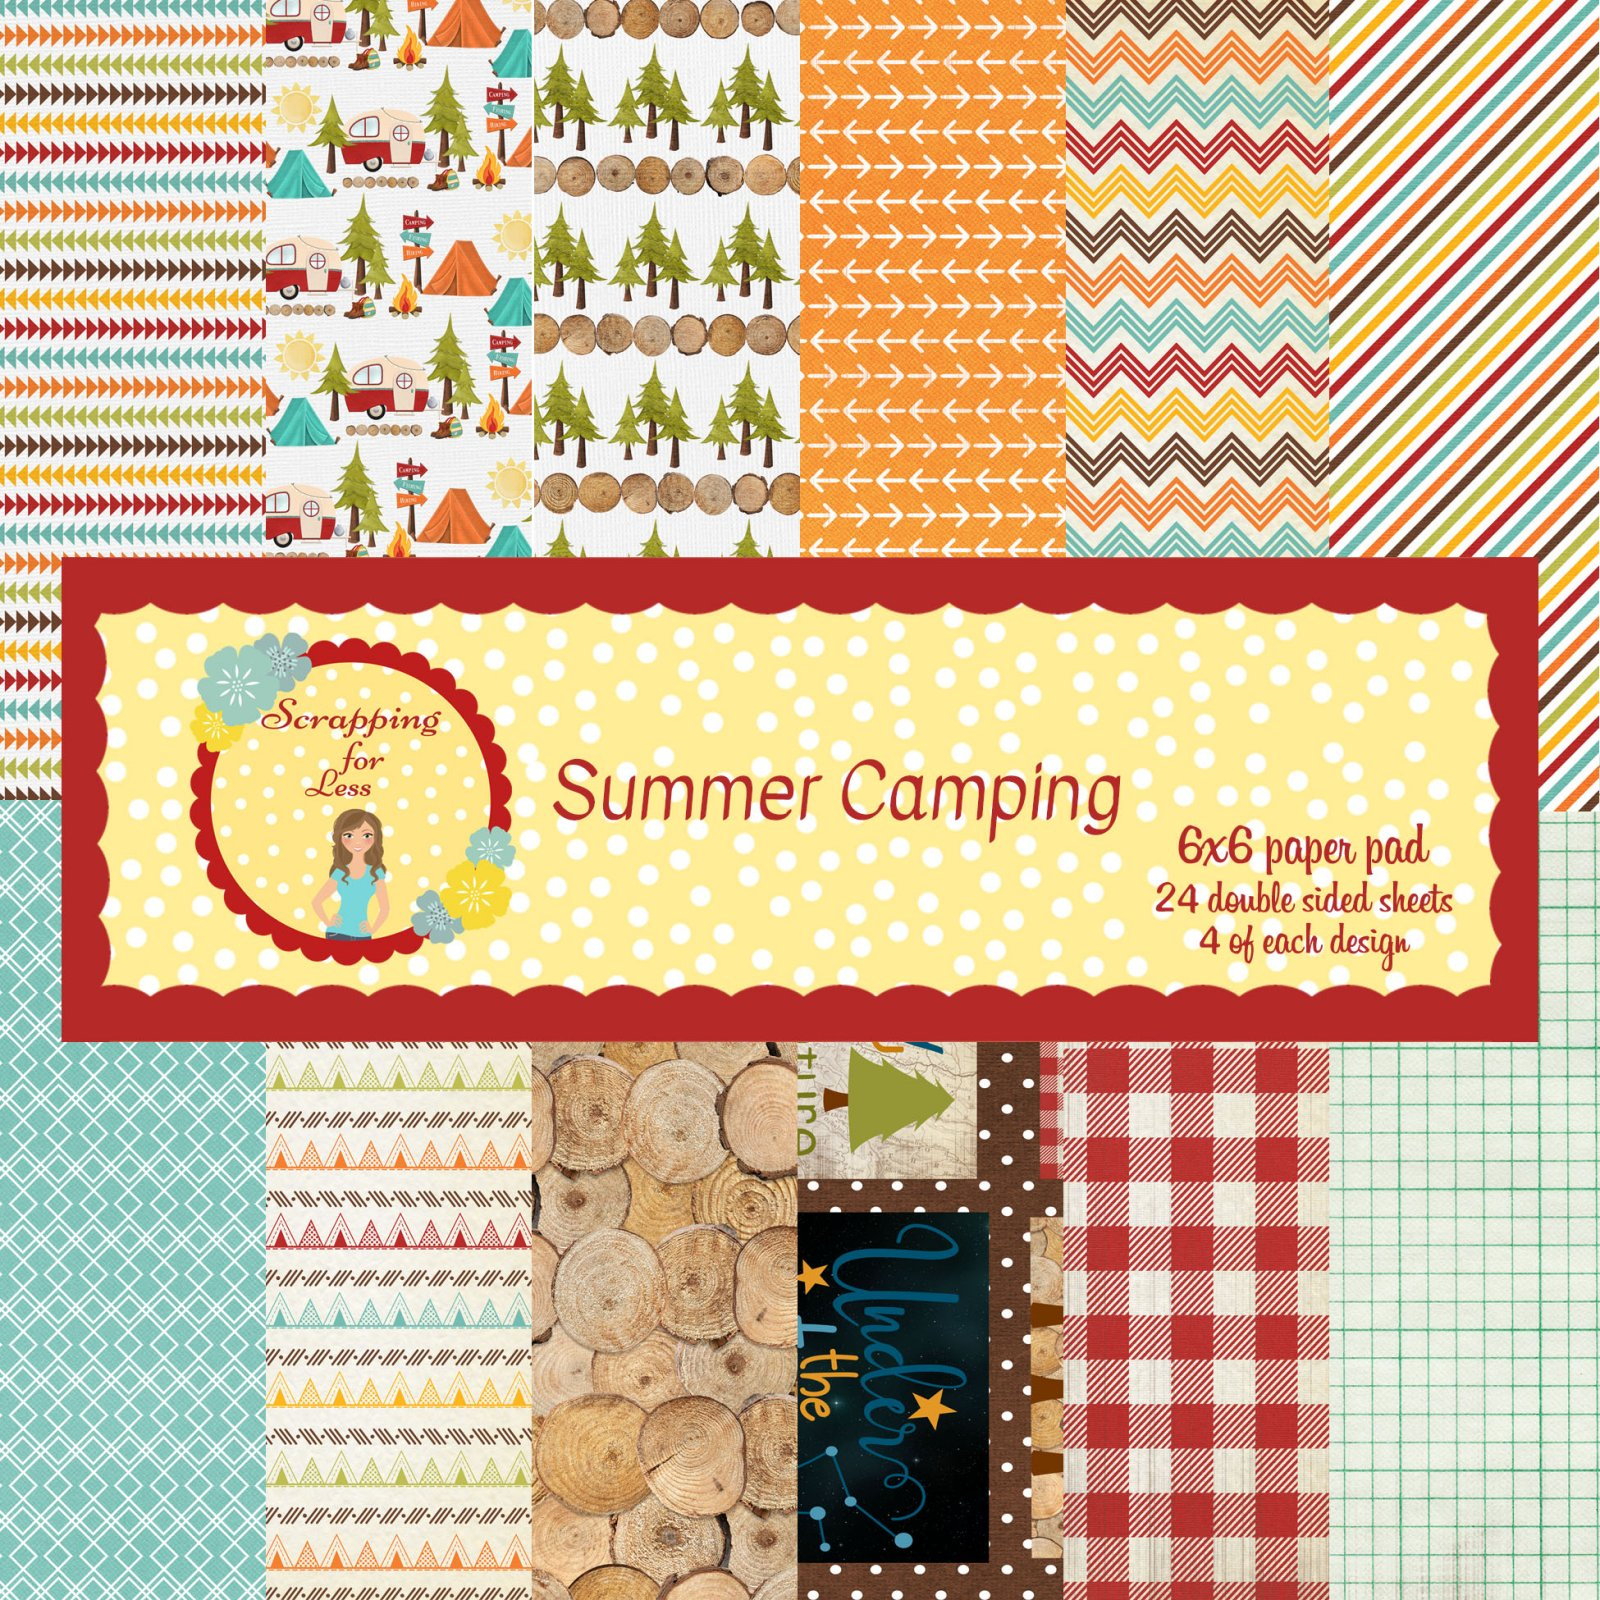 Scrapping for Less 6x6 Paper Pad Summer Camping